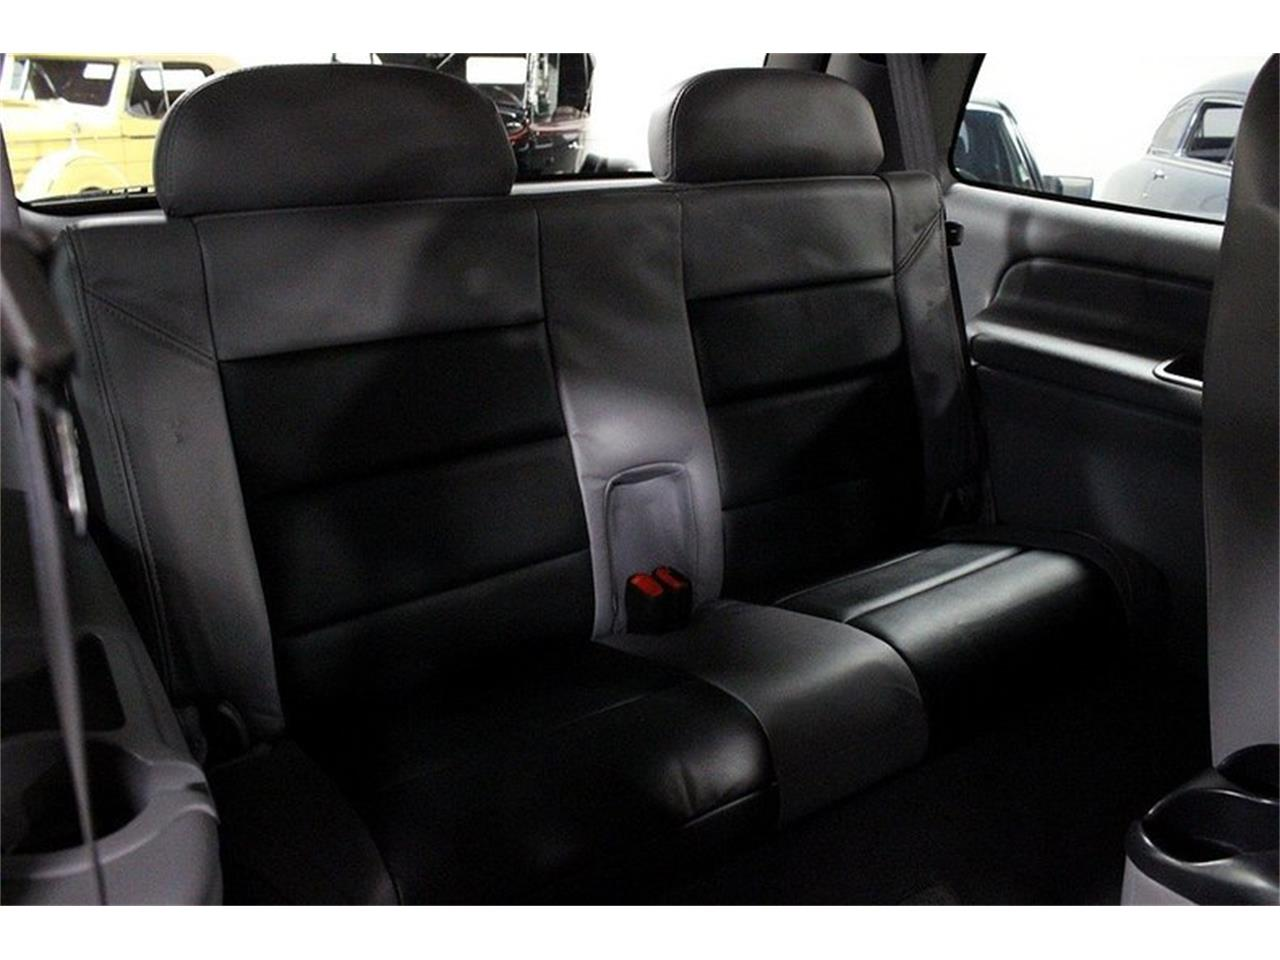 Large Picture of '99 Dodge Durango Shelby SP-360 - $31,900.00 Offered by GR Auto Gallery - MB1Y